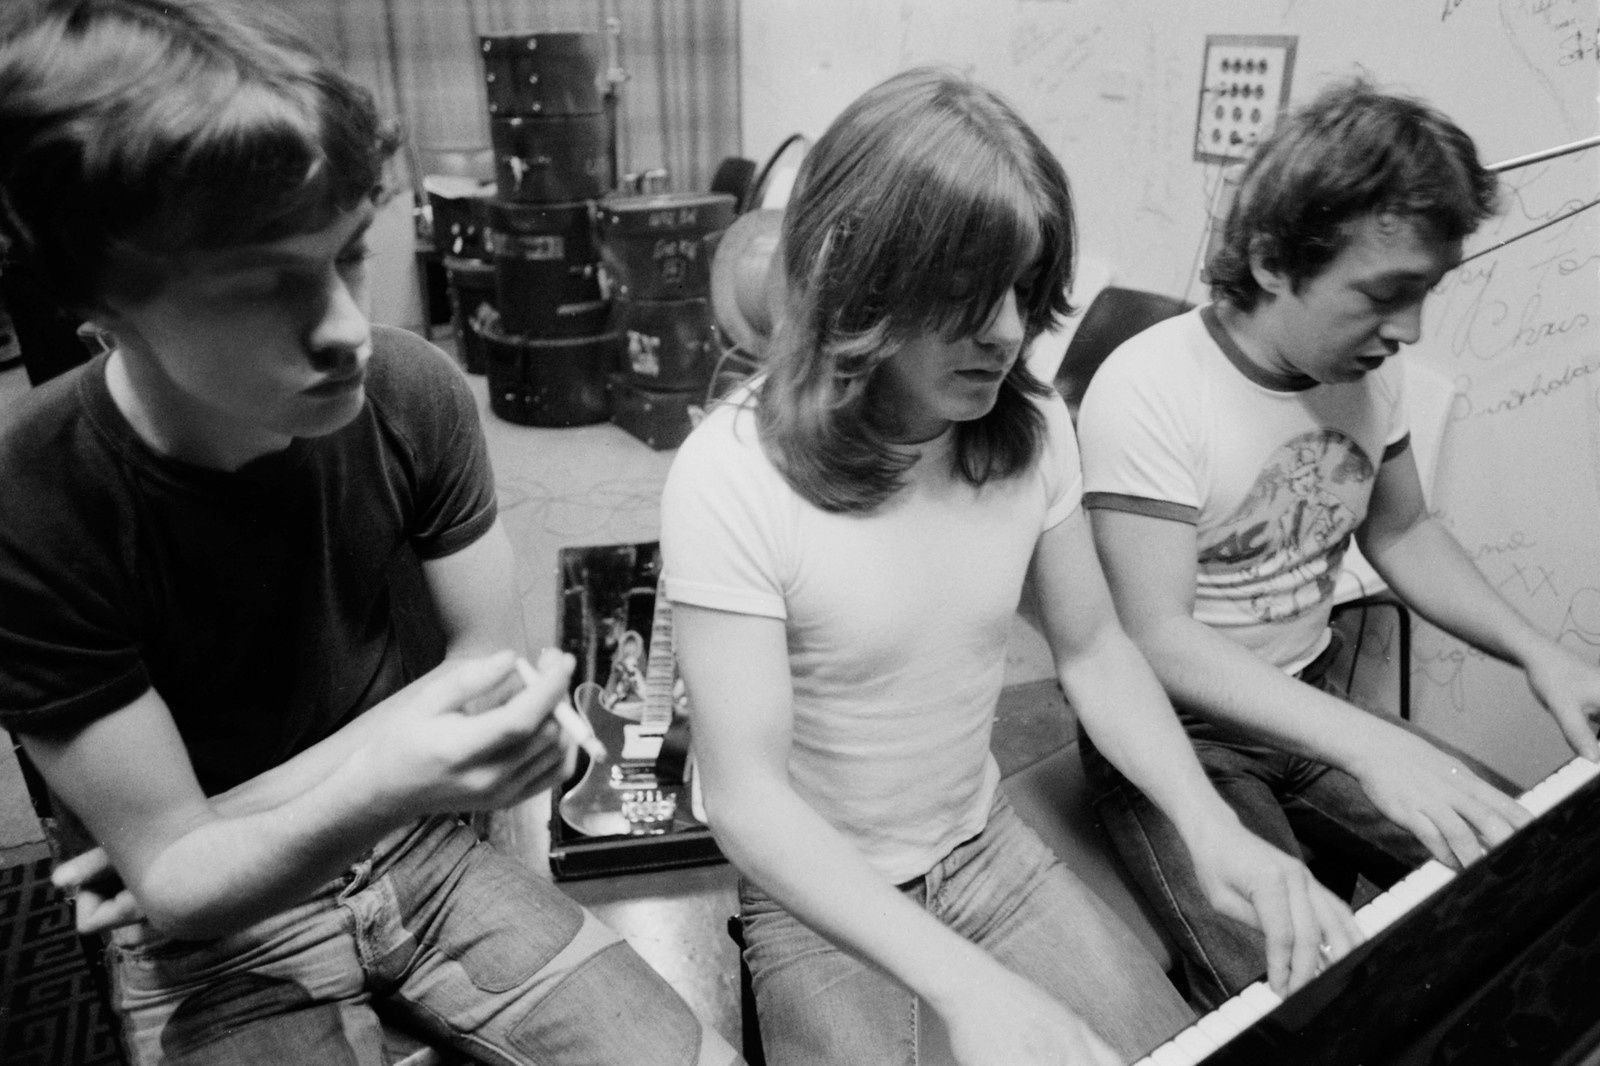 1973: The Young Brothers – From left to right  Angus Young, Malcolm Young, George Young - Photographer: Philip Morris